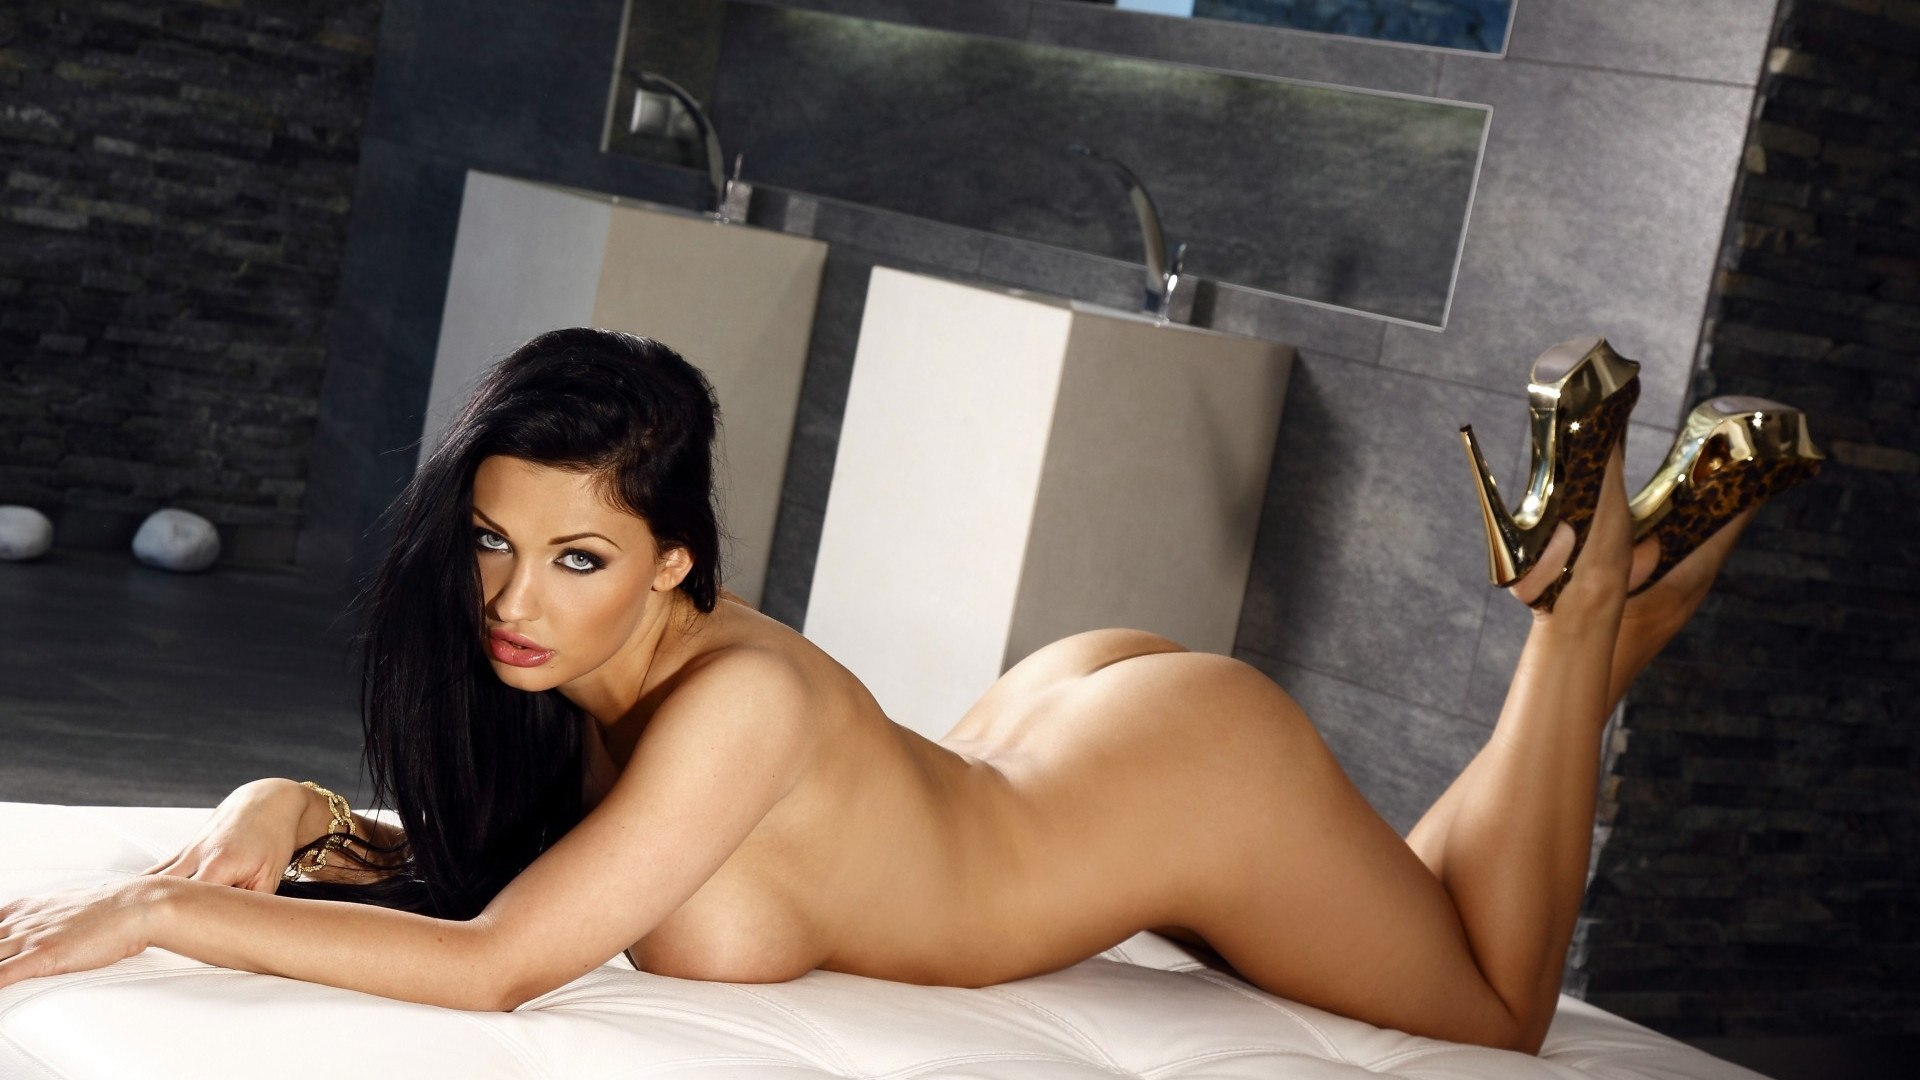 Will Cams Fit Your Schedule To See Hot Brunette MILFs?